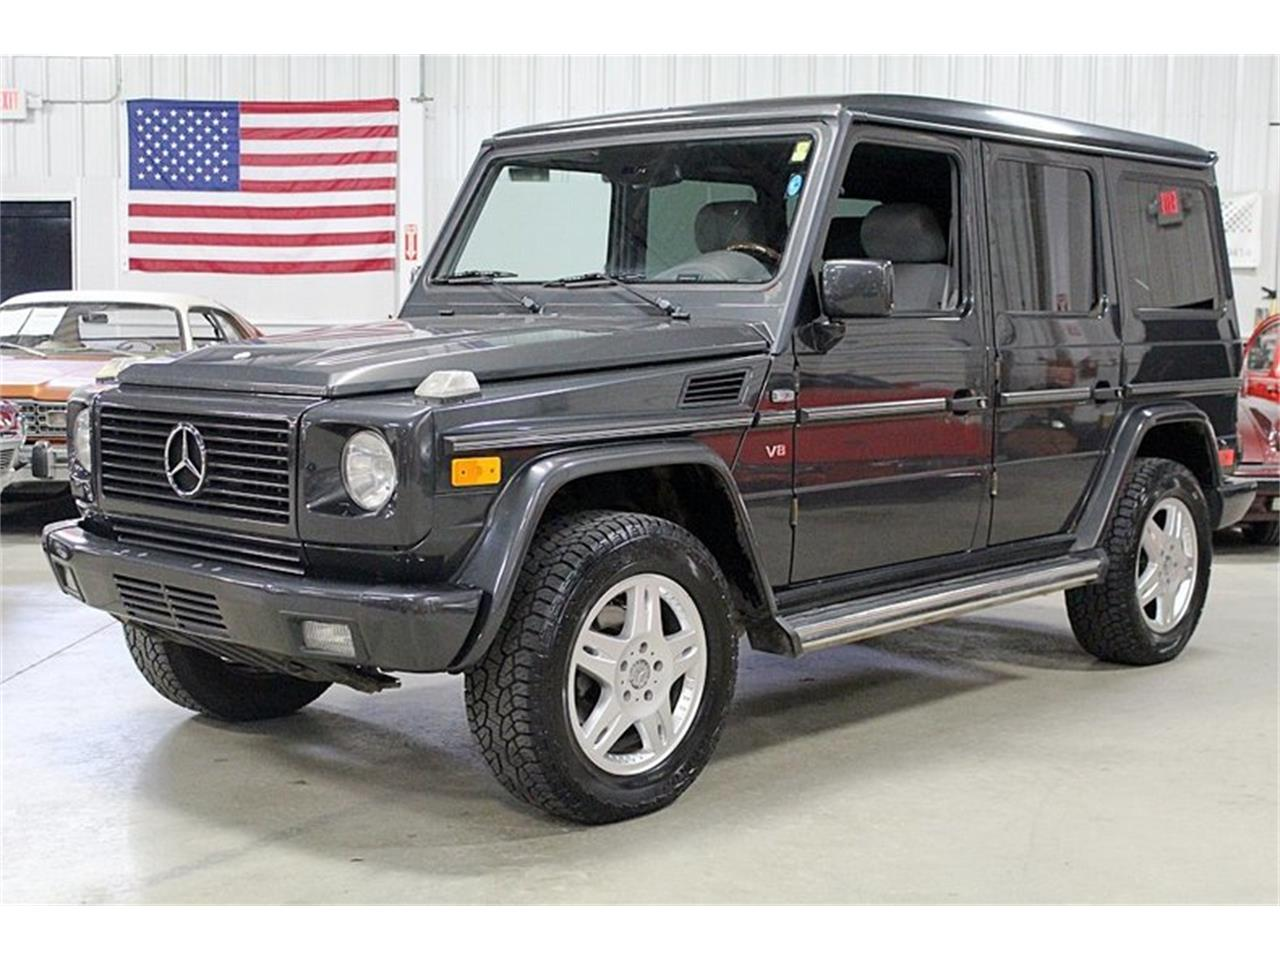 for sale 2002 mercedes-benz g500 in kentwood, michigan cars - grand rapids, mi at geebo